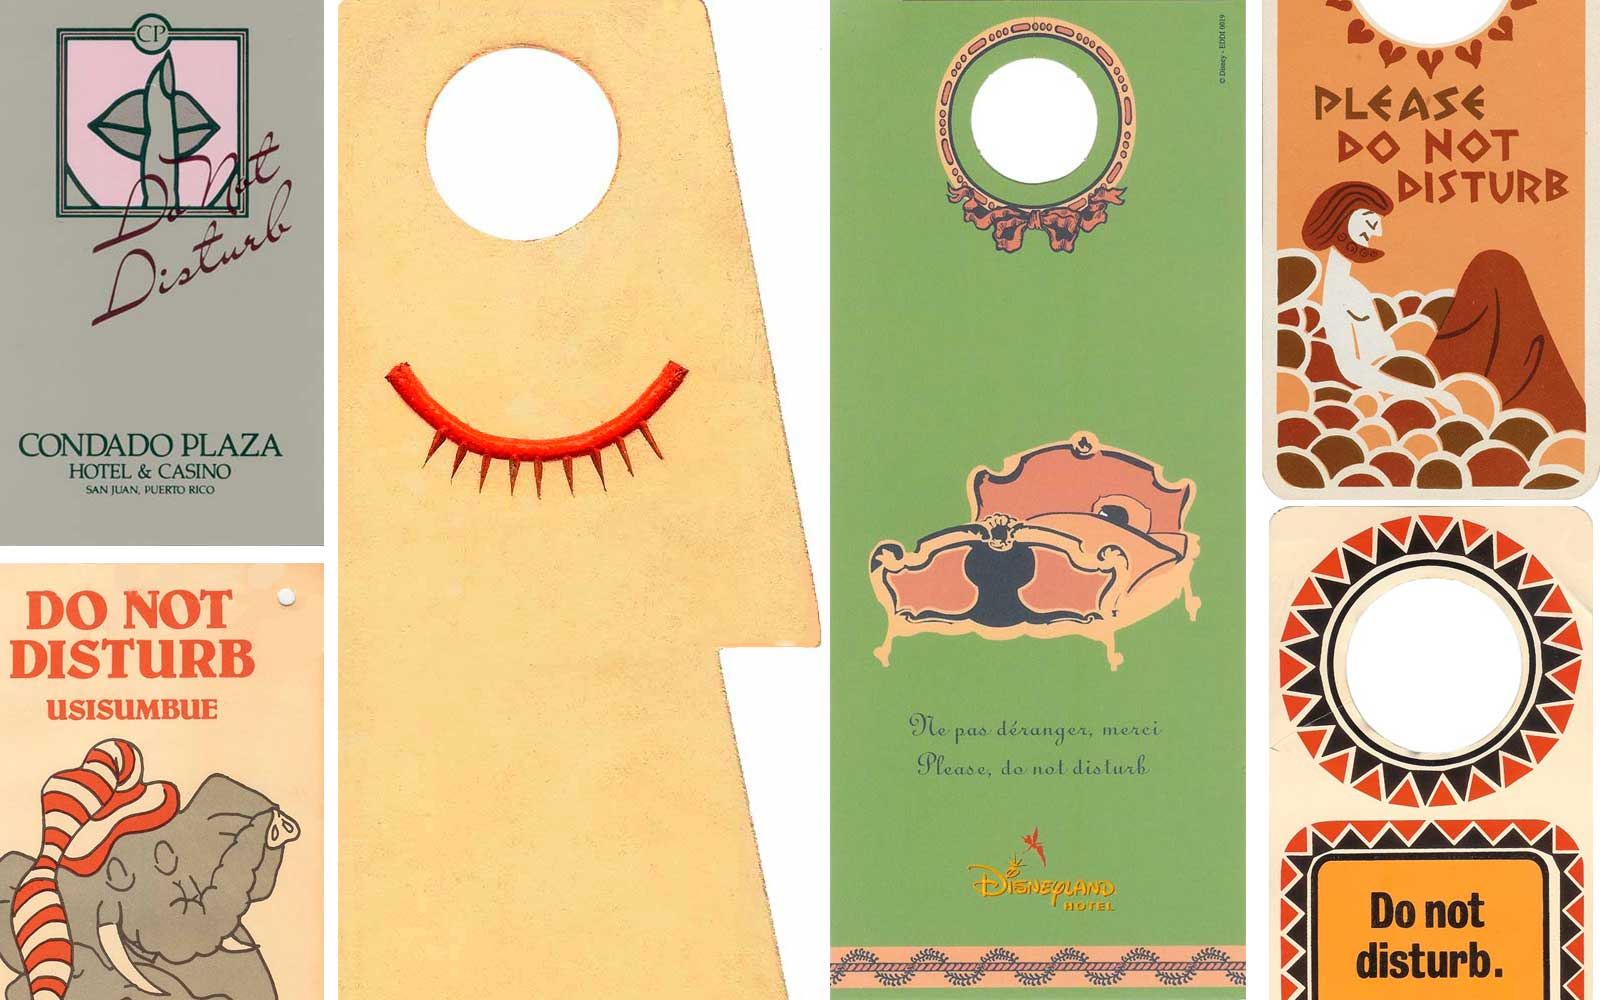 Hotel Do Not Disturb Sign Collection by Edoardo Flores